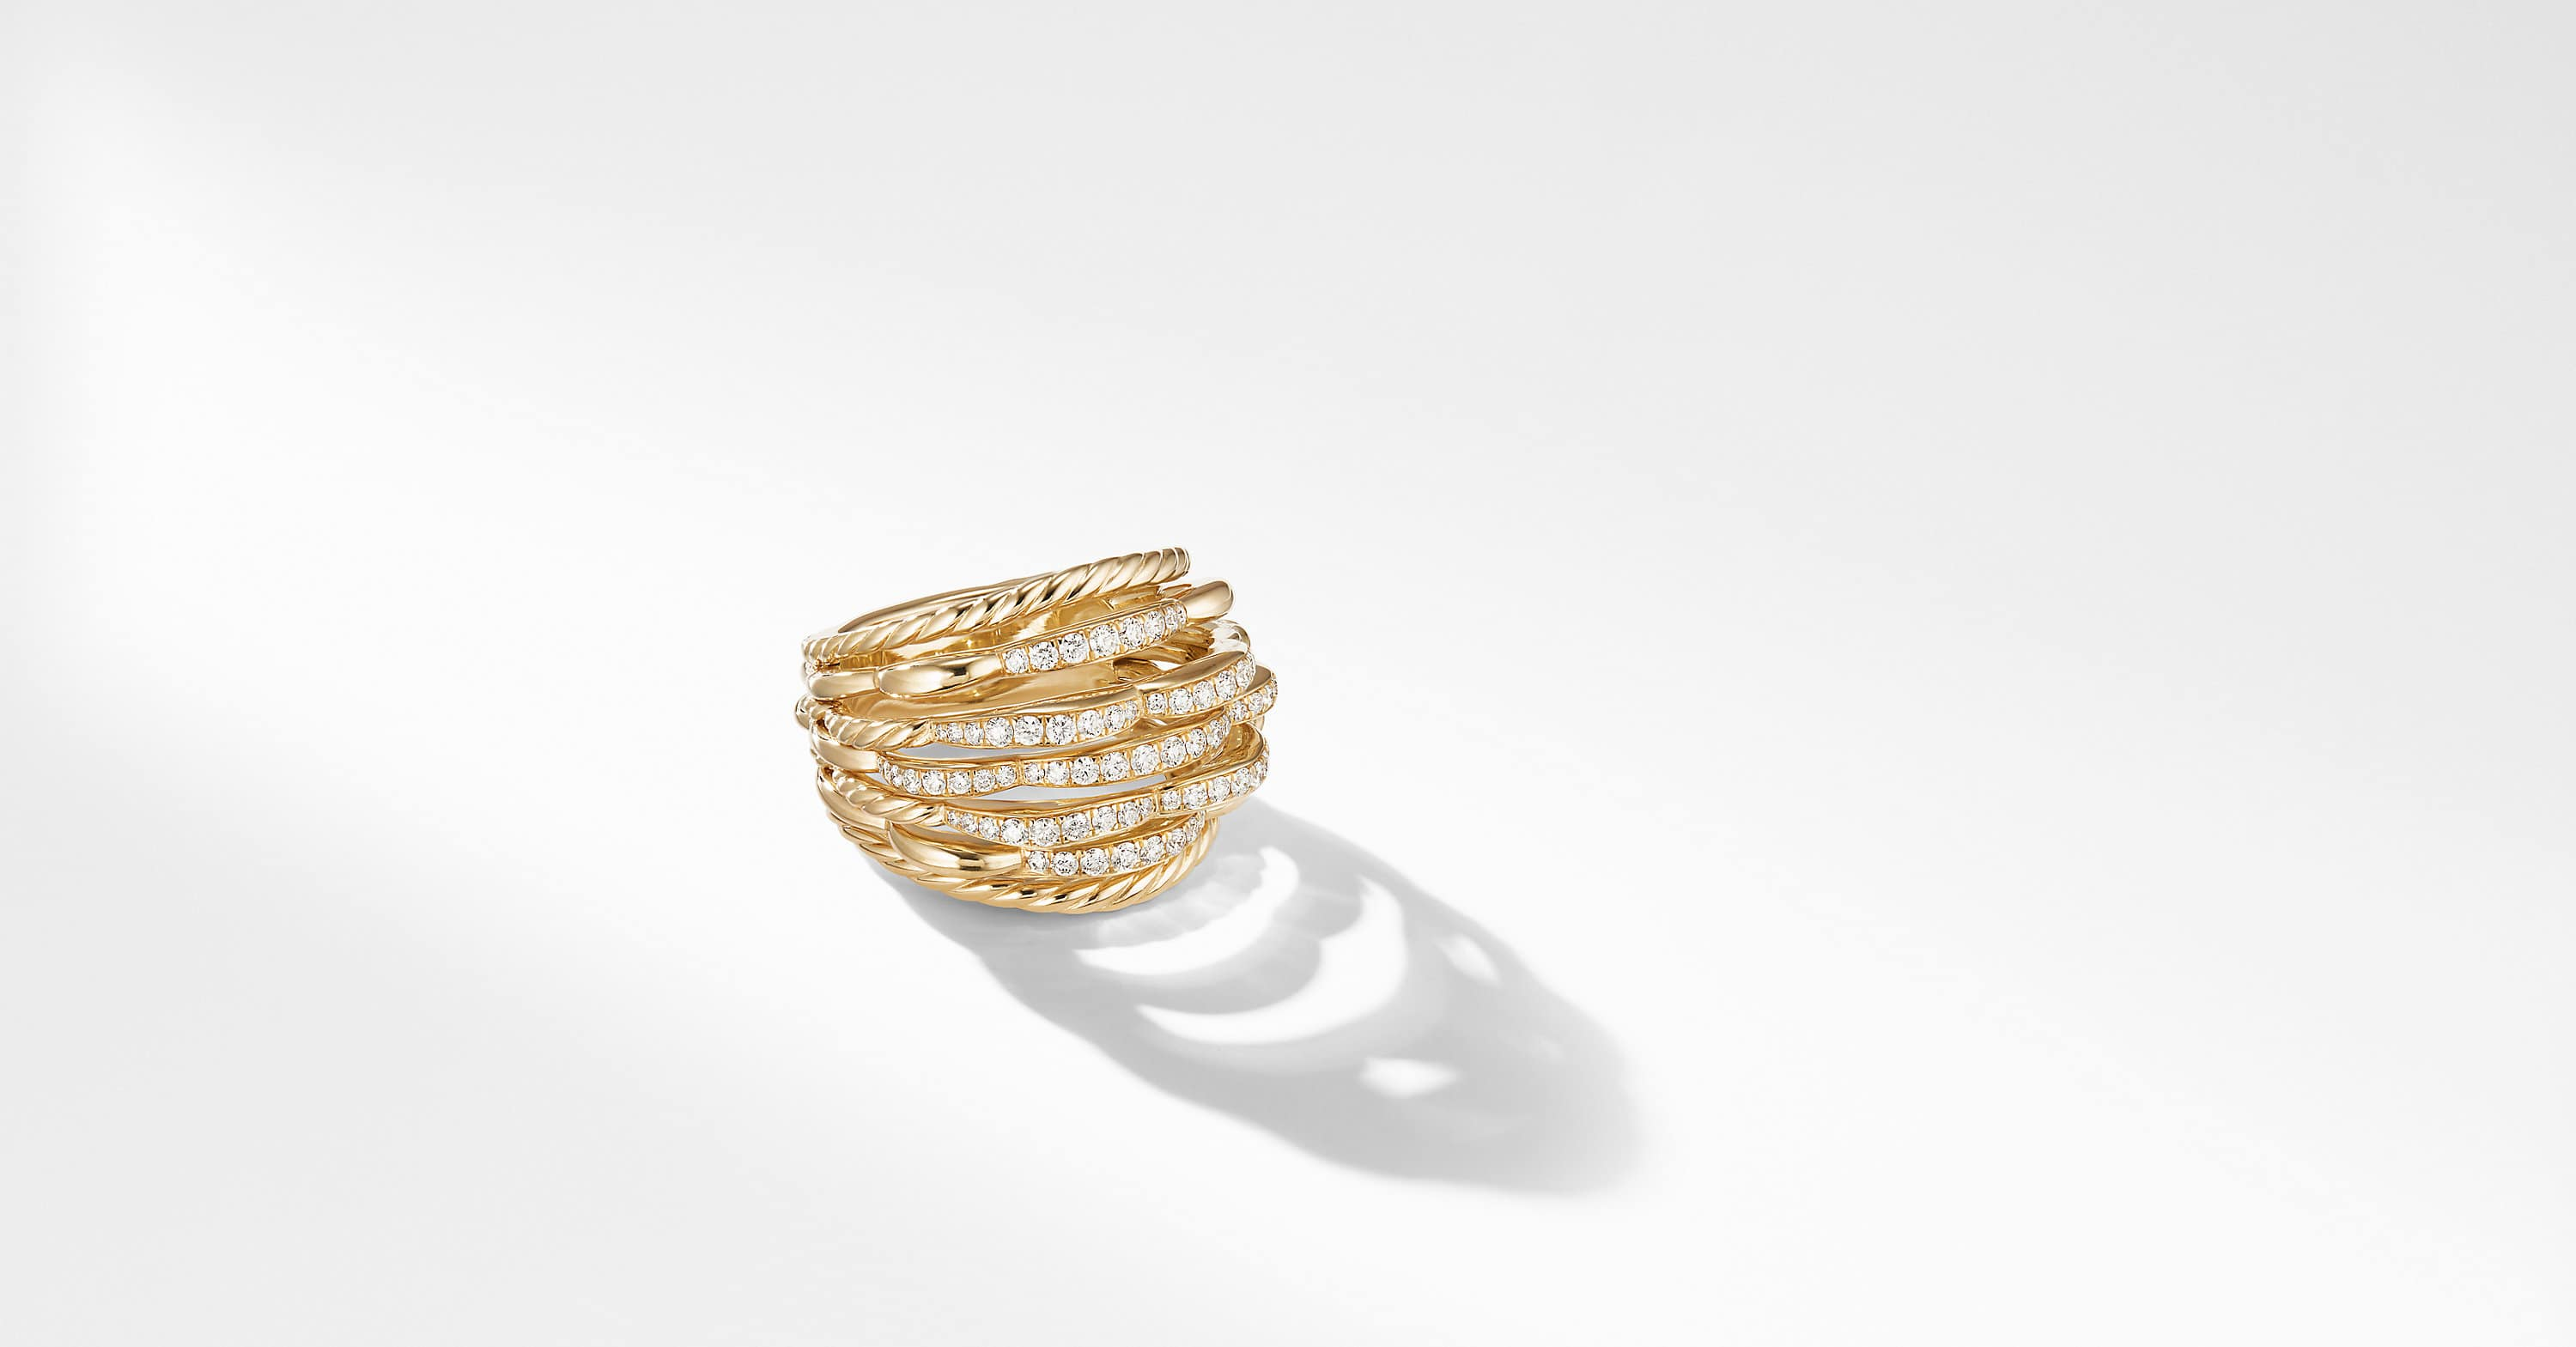 Tides Dome Ring in 18K Yellow Gold with Diamonds, 18mm